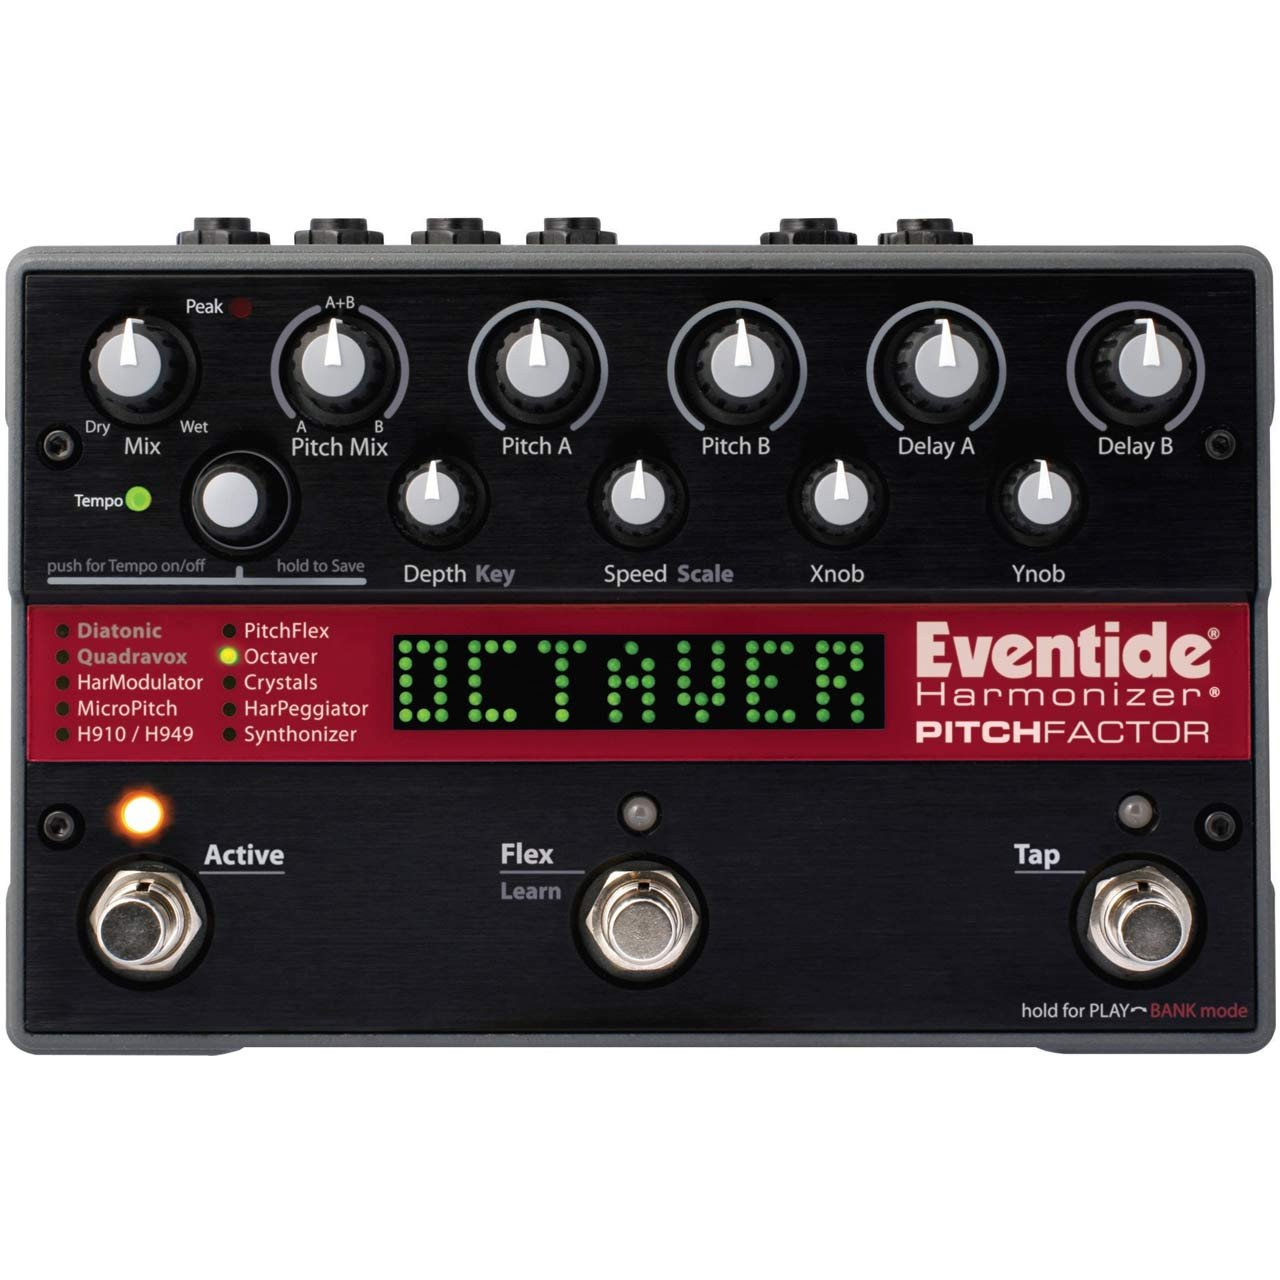 Pedals & Effects - Eventide PitchFactor - Harmonizer Effects Processor